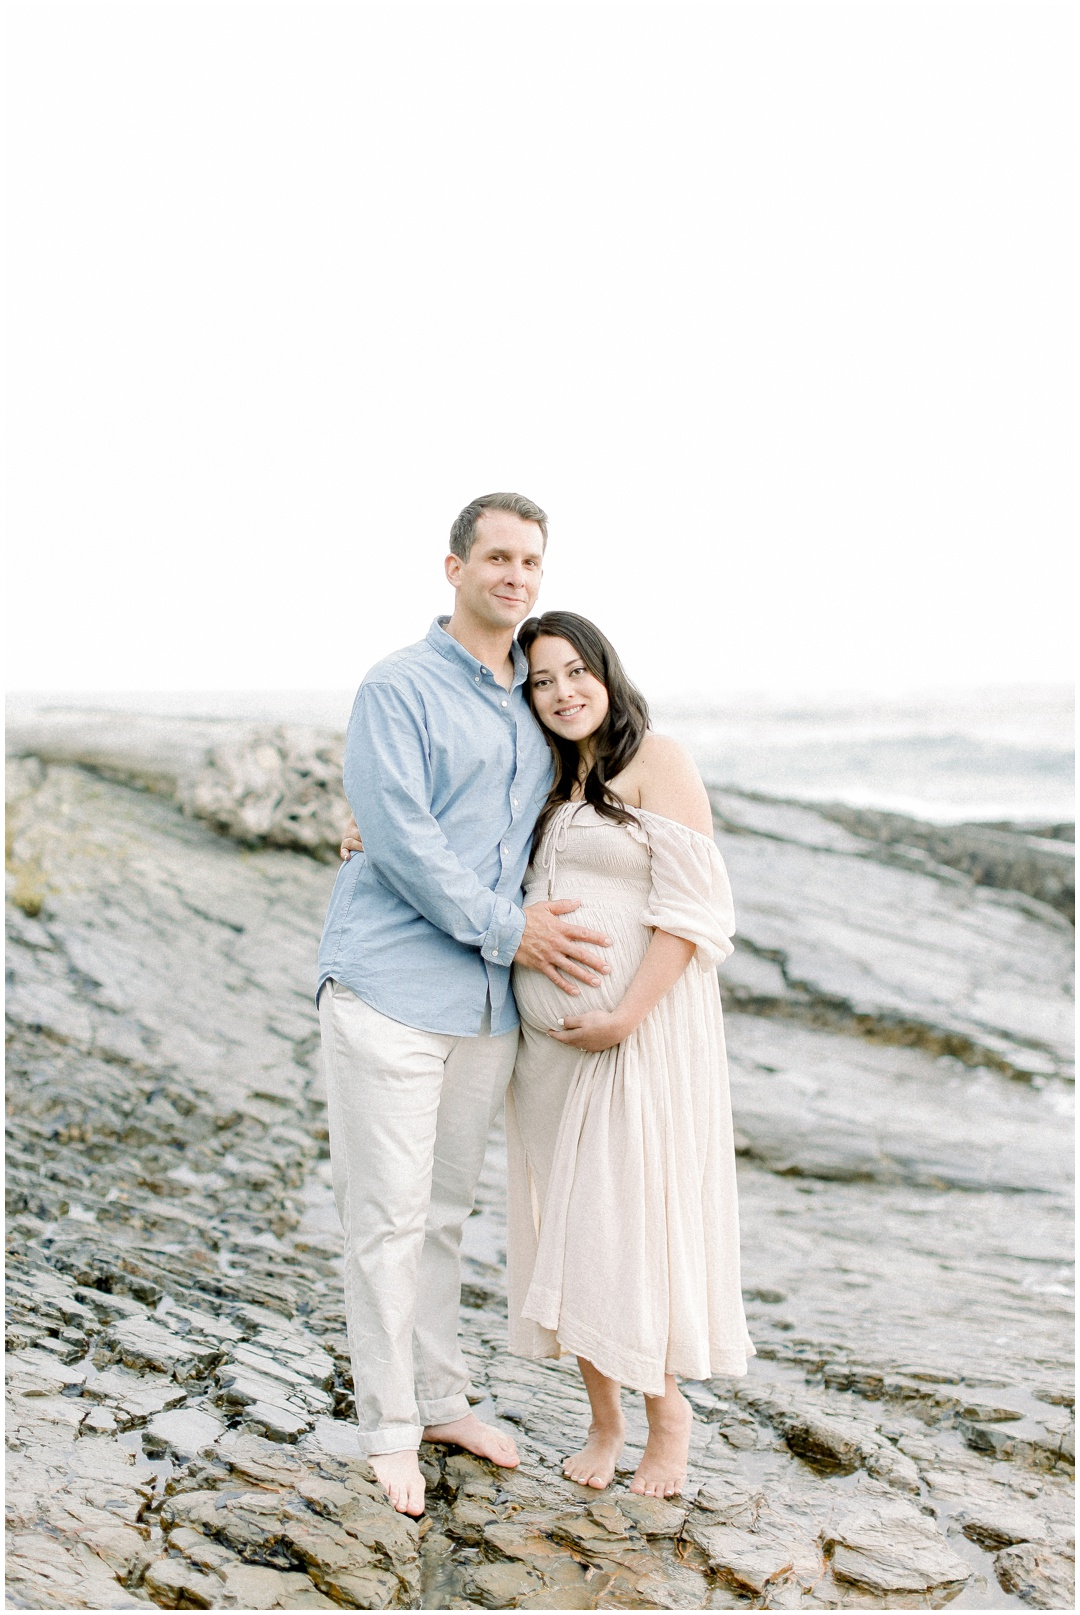 Newport_Beach_Newborn_Light_Airy_Natural_Photographer_Newport_Beach_Photographer_Orange_County_Maternity_Photographer_Cori_Kleckner_Photography_Newport_Beach_Photographer_Candice_Byle_Candice_Fillippini_Kevin_Fillippini__4164.jpg